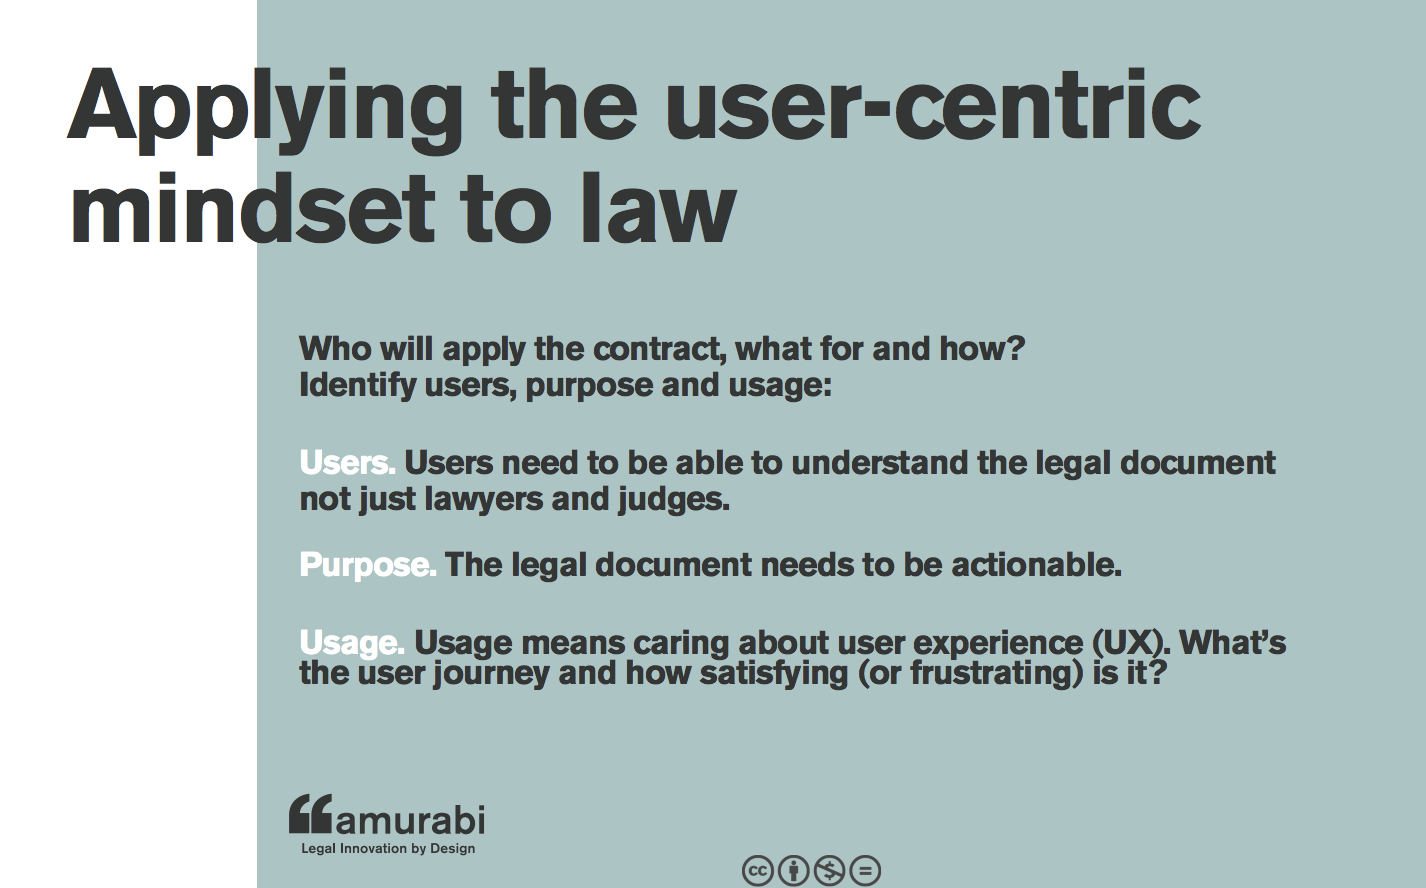 Applying that user-centric mindset to law